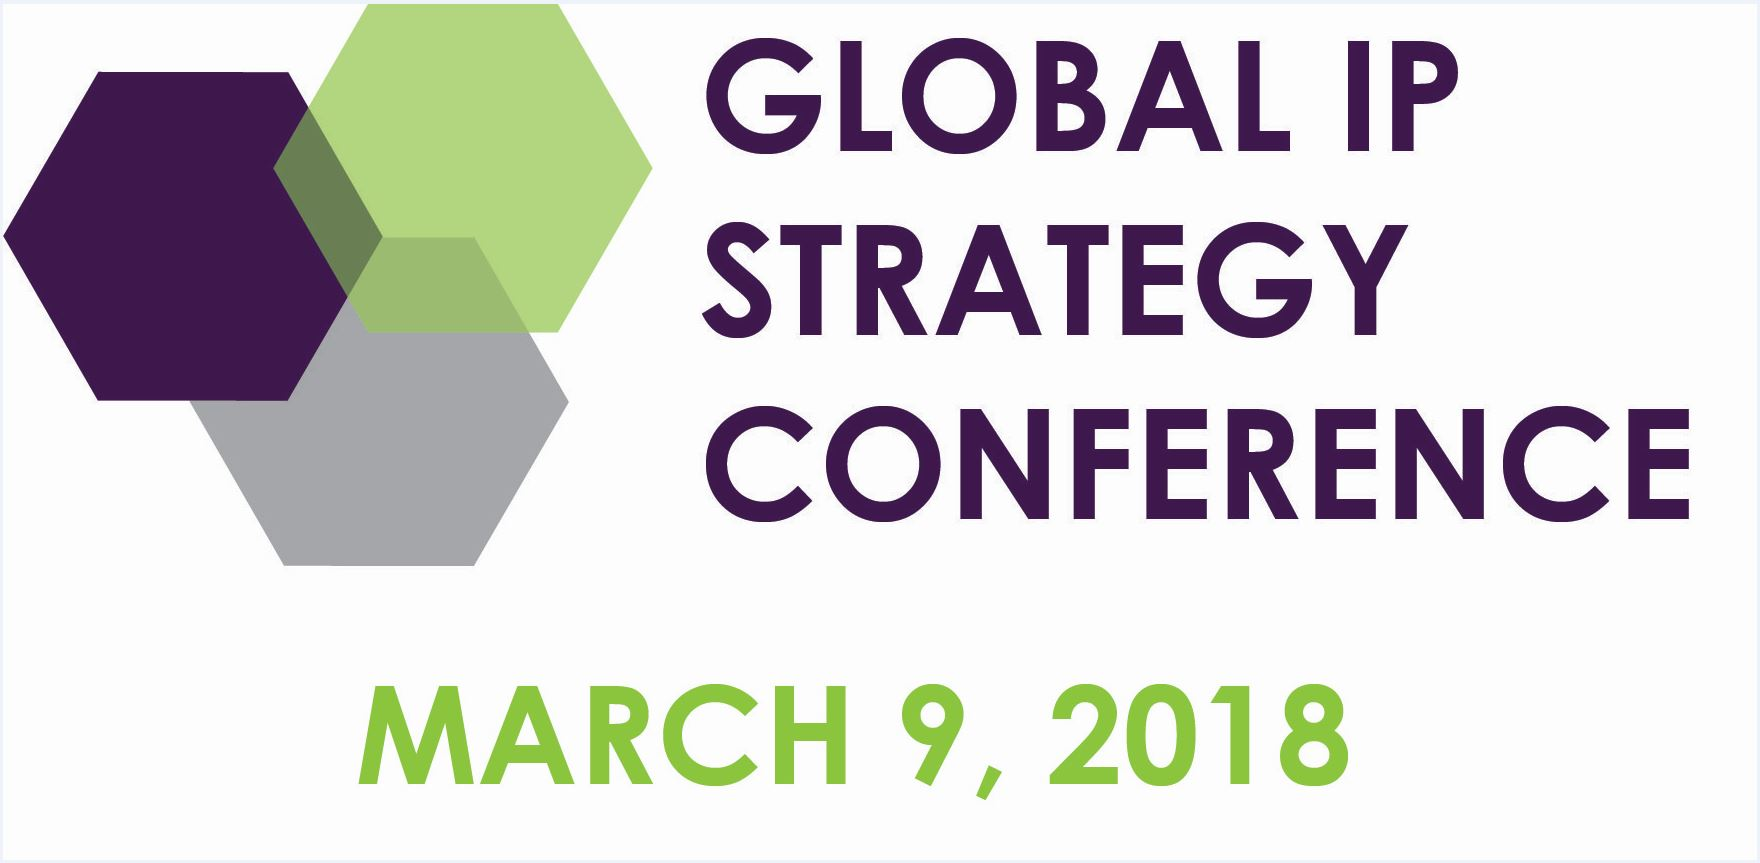 Global IP Strategy Conference